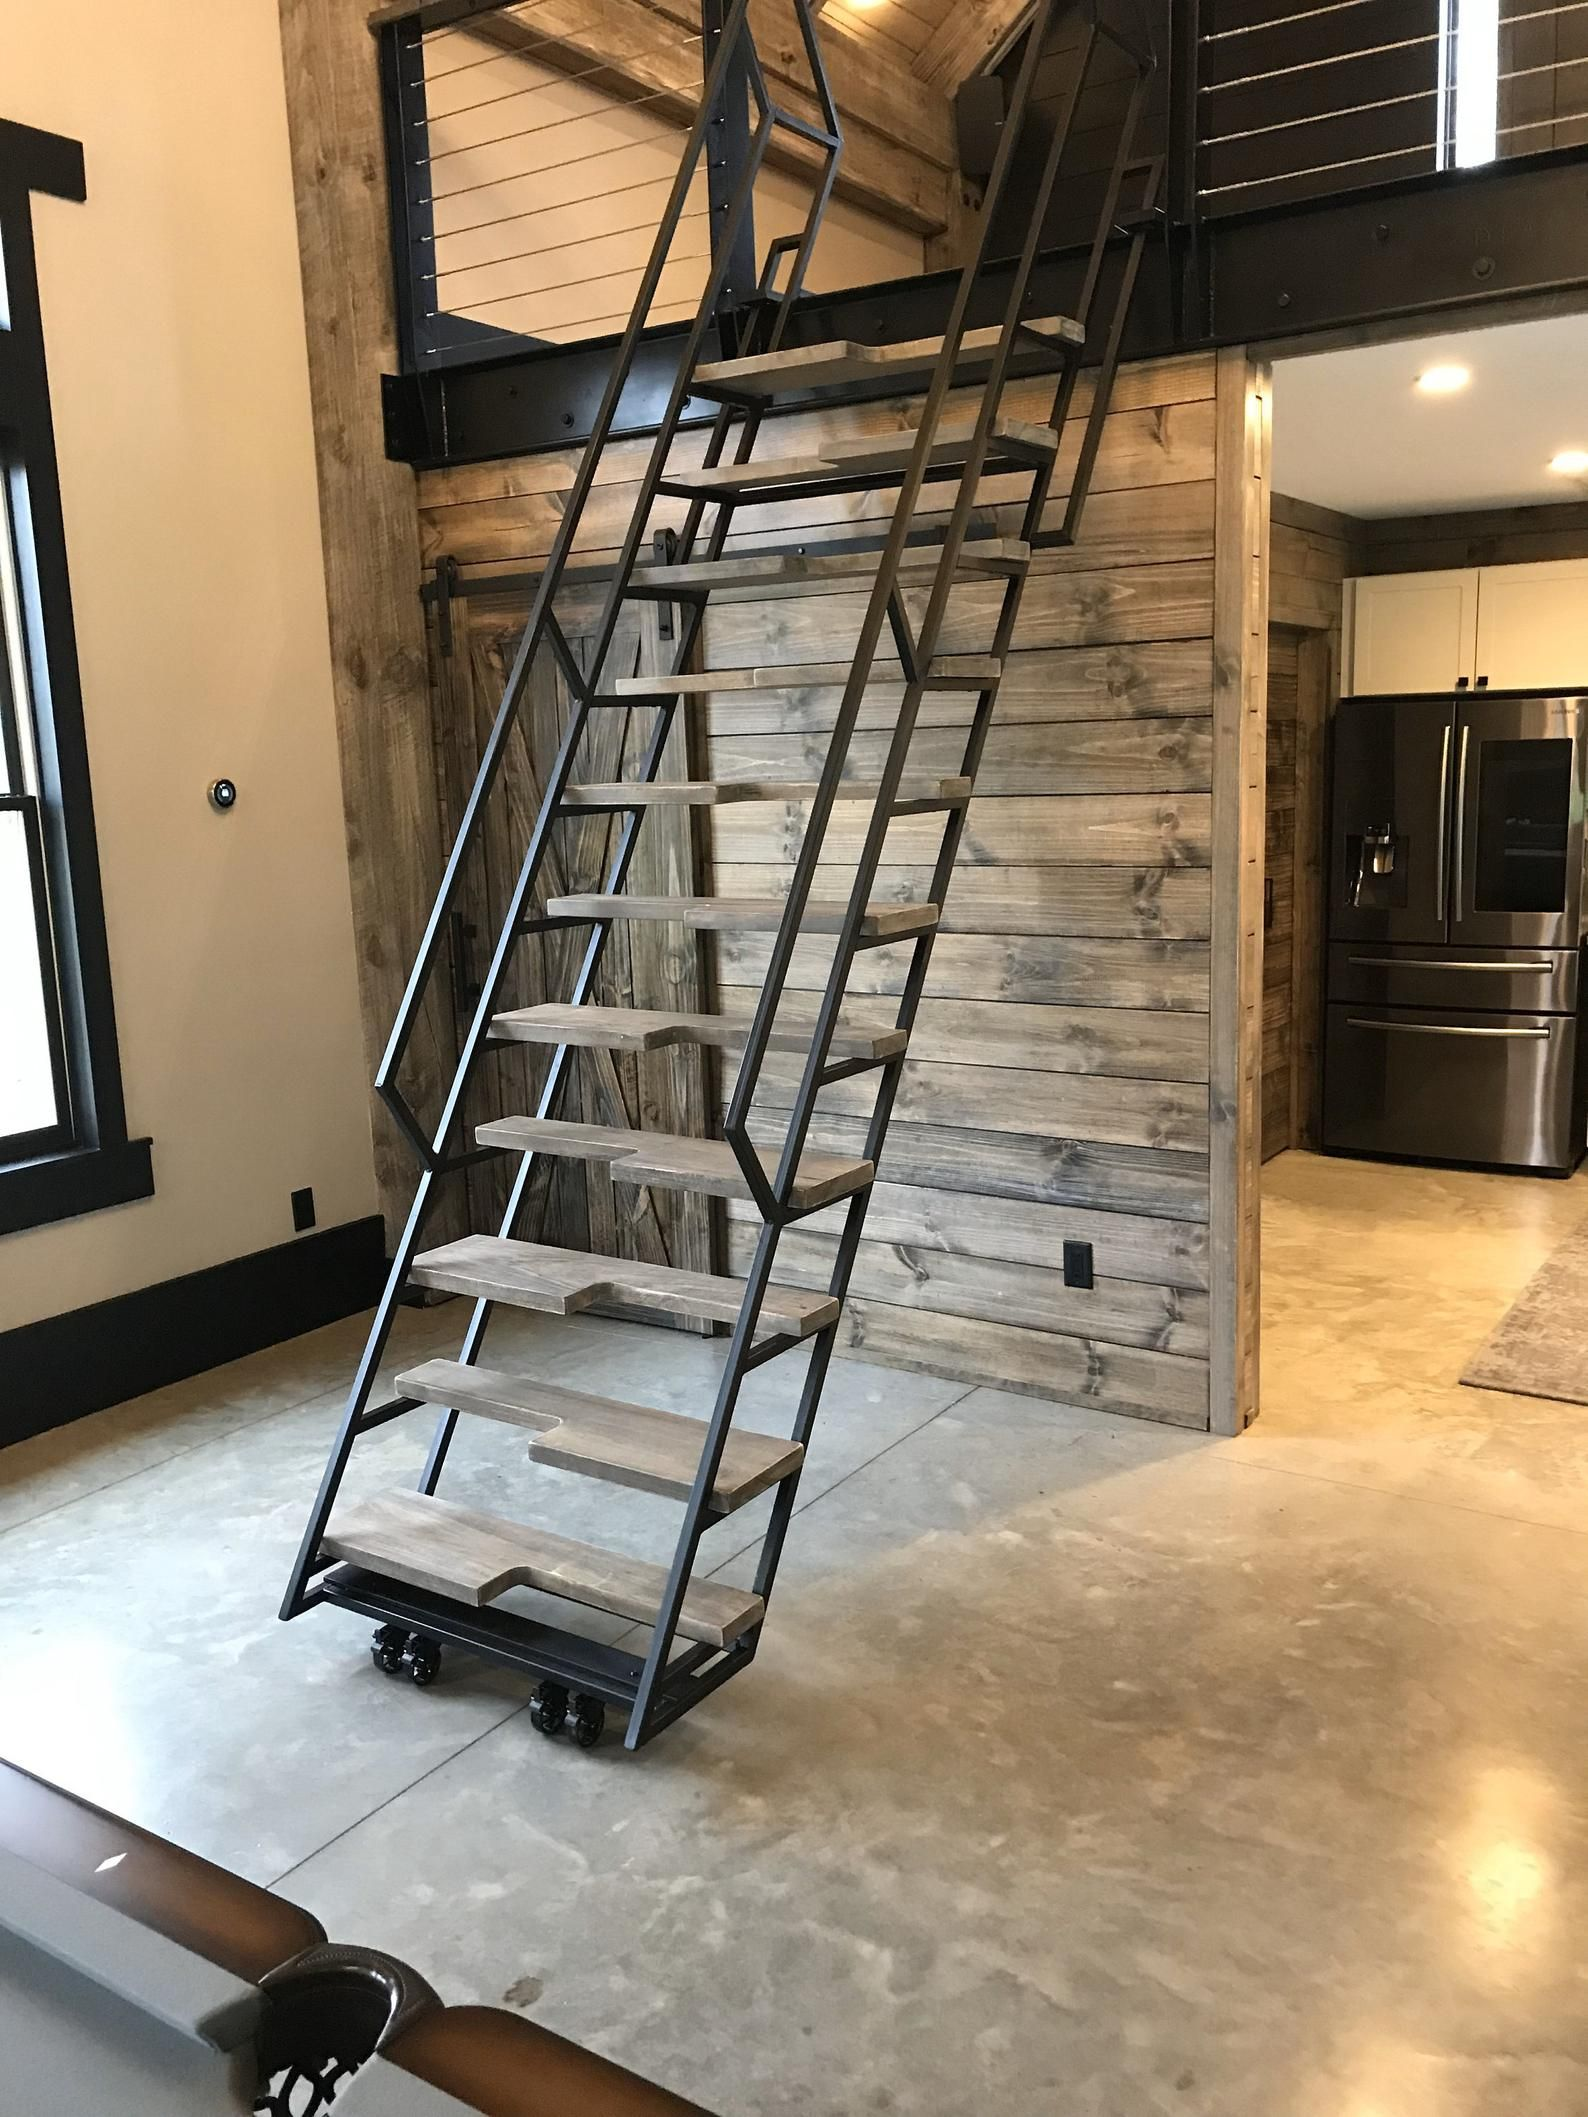 8 Ft Loft Ladder Stairs Free Shipping To Your Door Etsy In 2020 Loft Ladder Tiny House Stairs Retractable Stairs